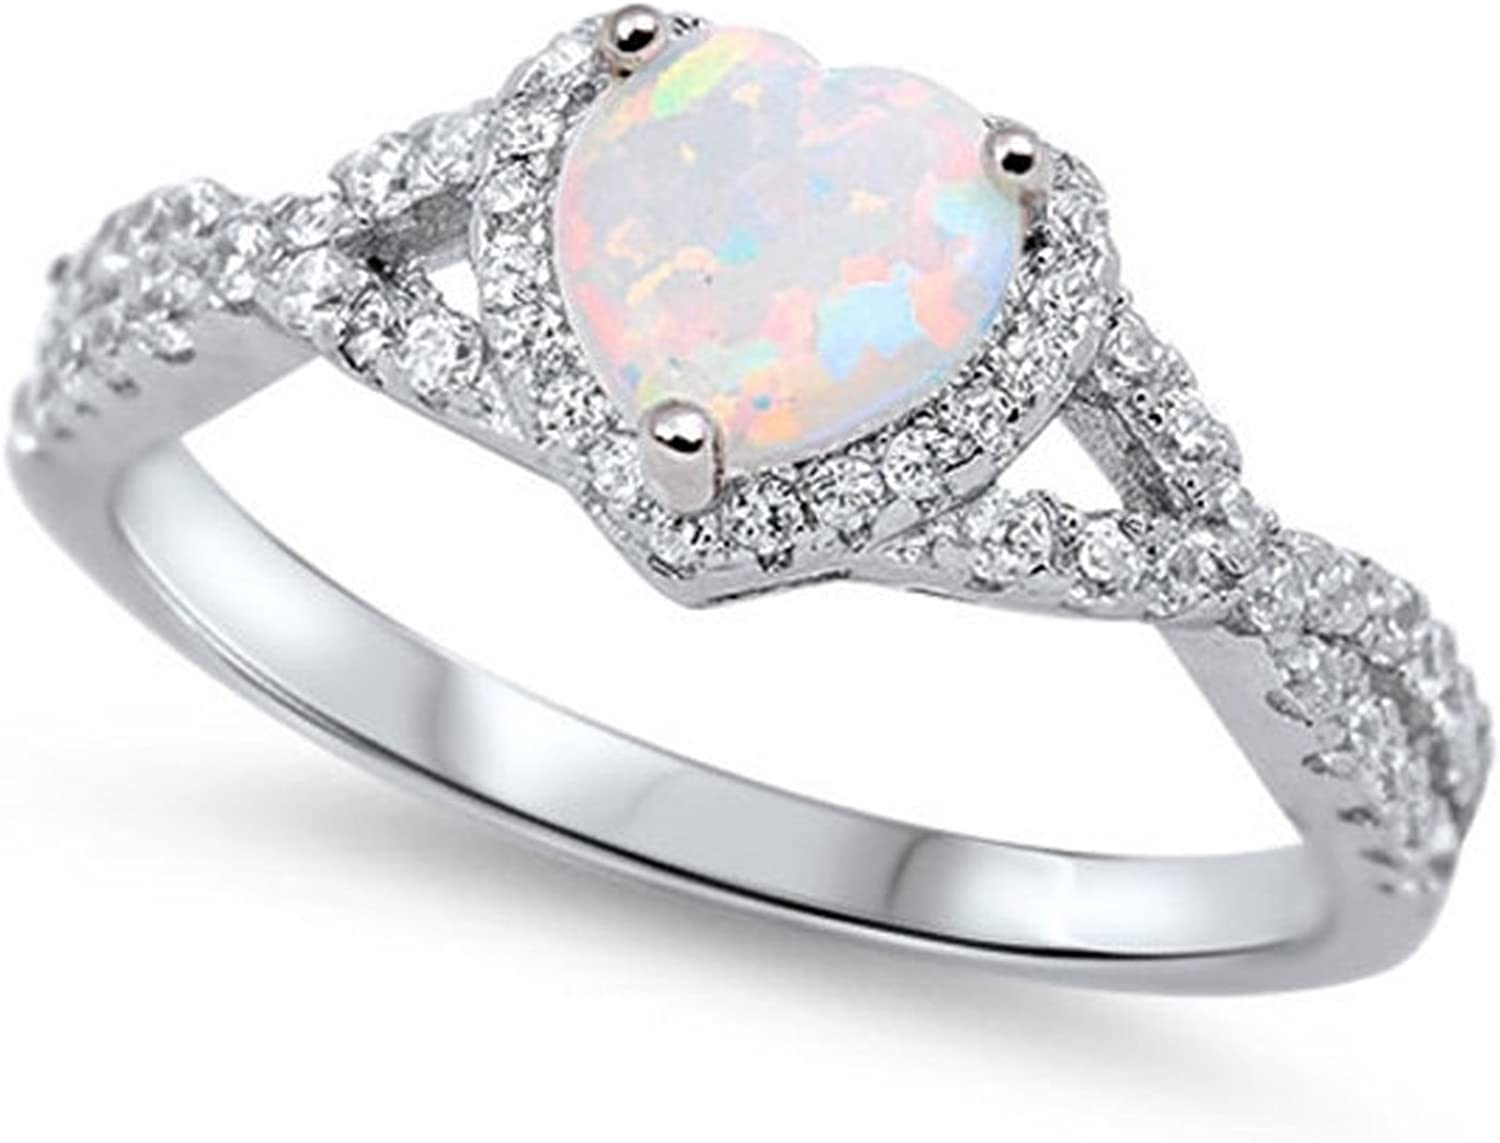 Blue Apple Co. 925 Sterling Silver Infinity Shank Halo Promise Ring Heart Shape Lab White Created Opal Round Clear CZ